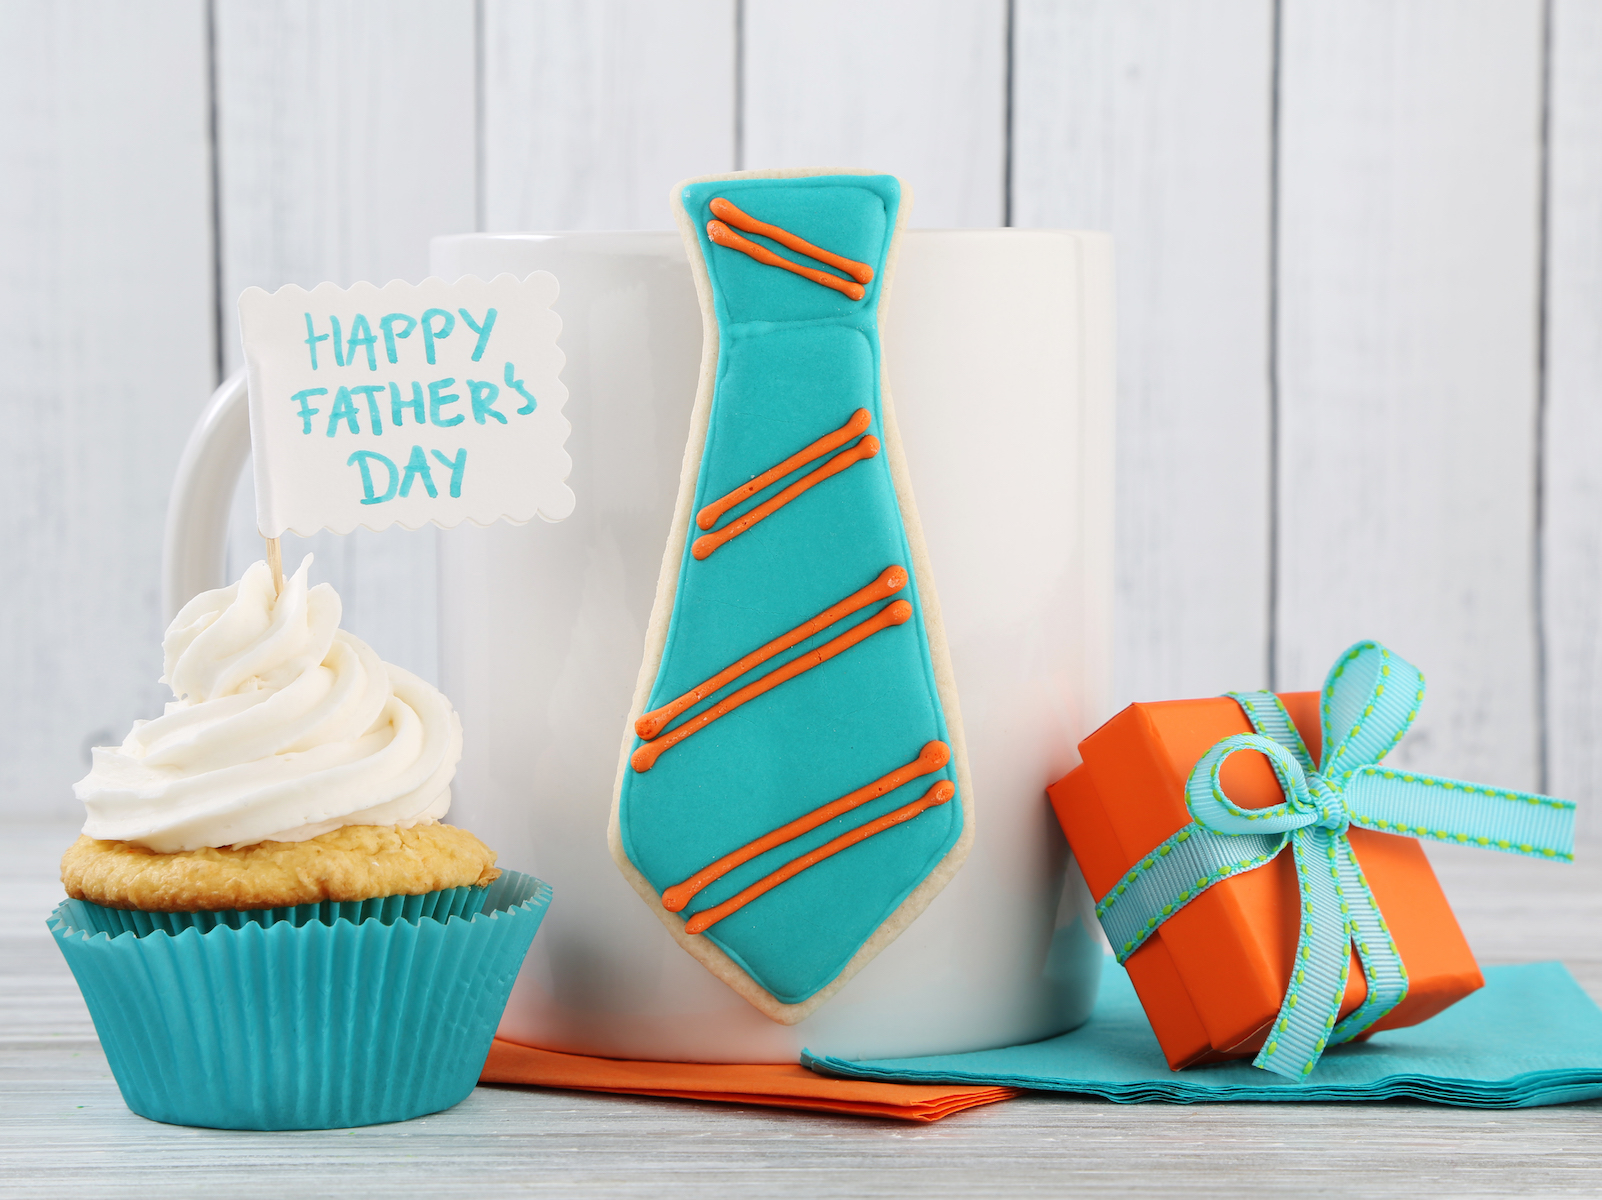 Father's Day Deals: Where Dads Can Get Free Food and Other Discounts